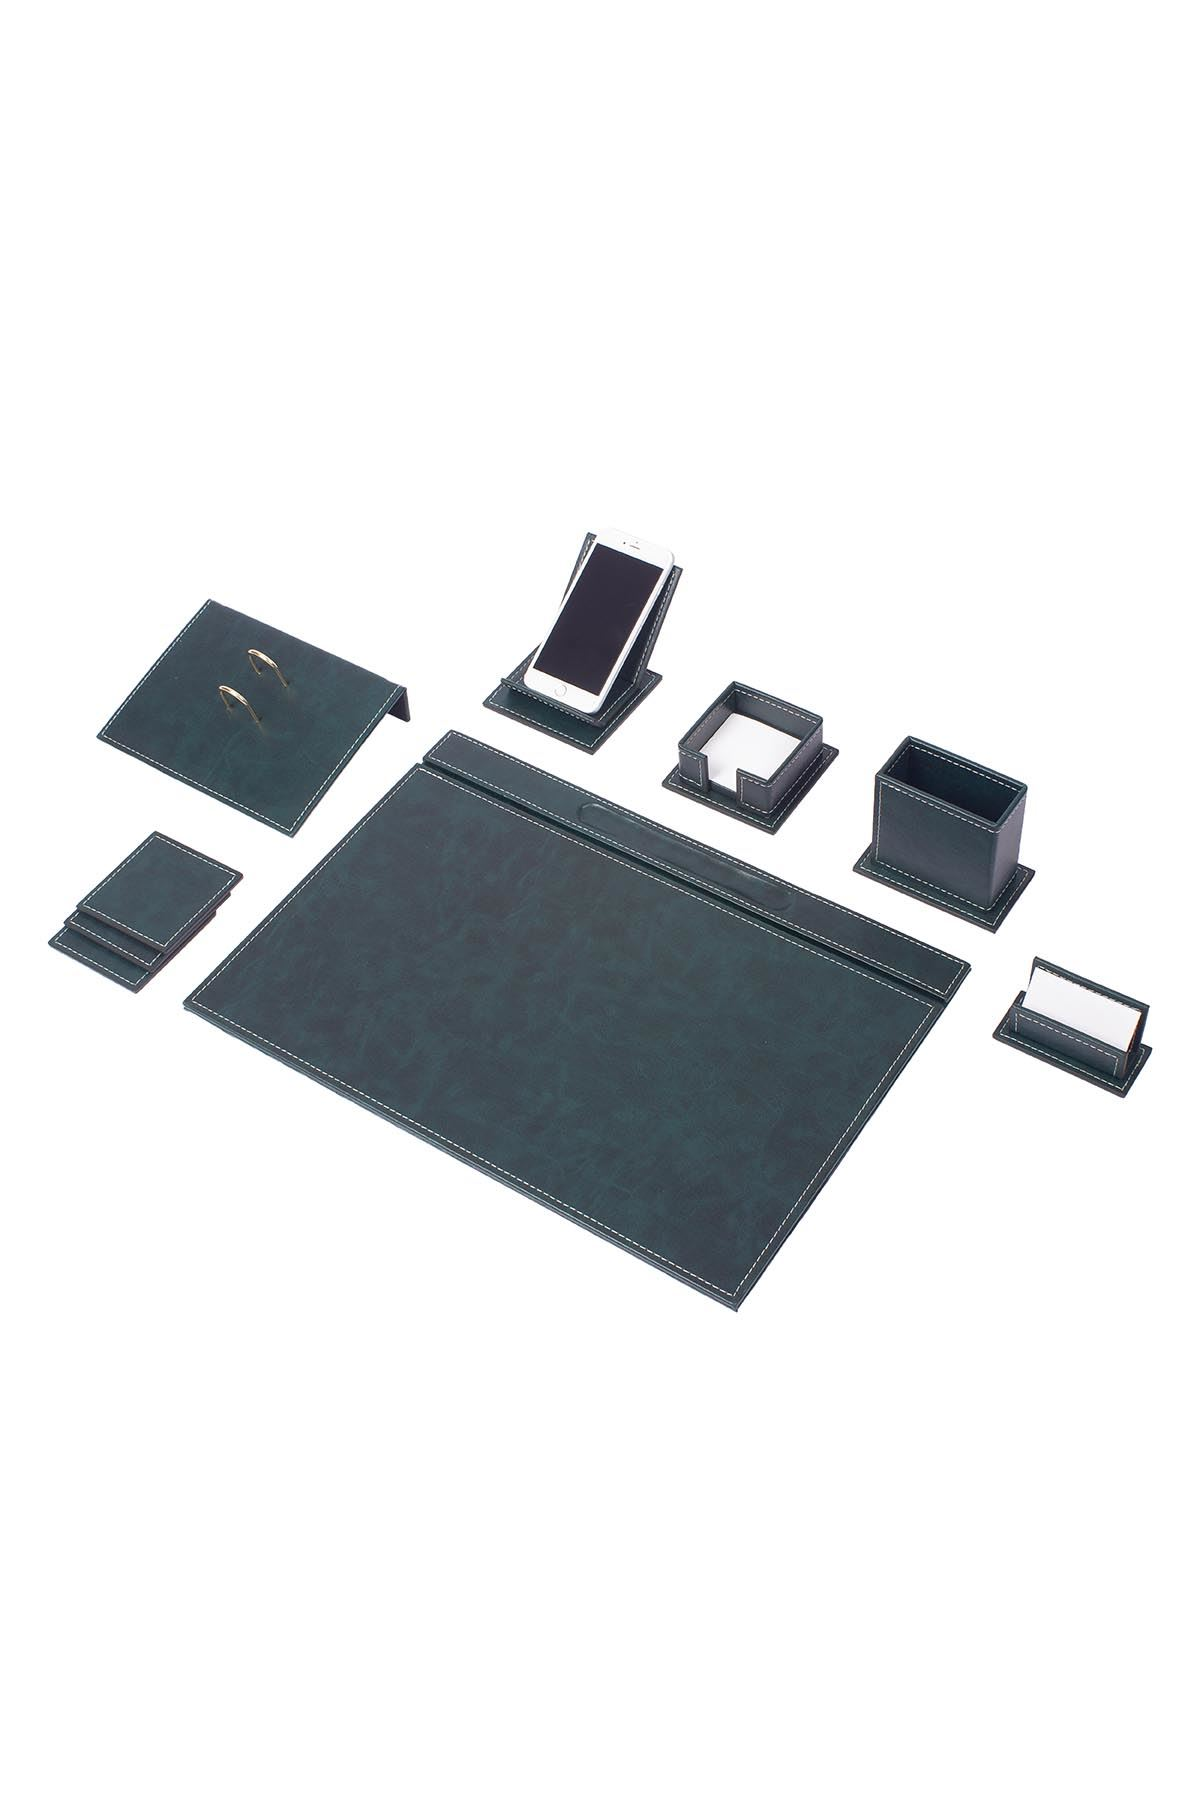 Vega Leather Desk Set Green 9 Accessories